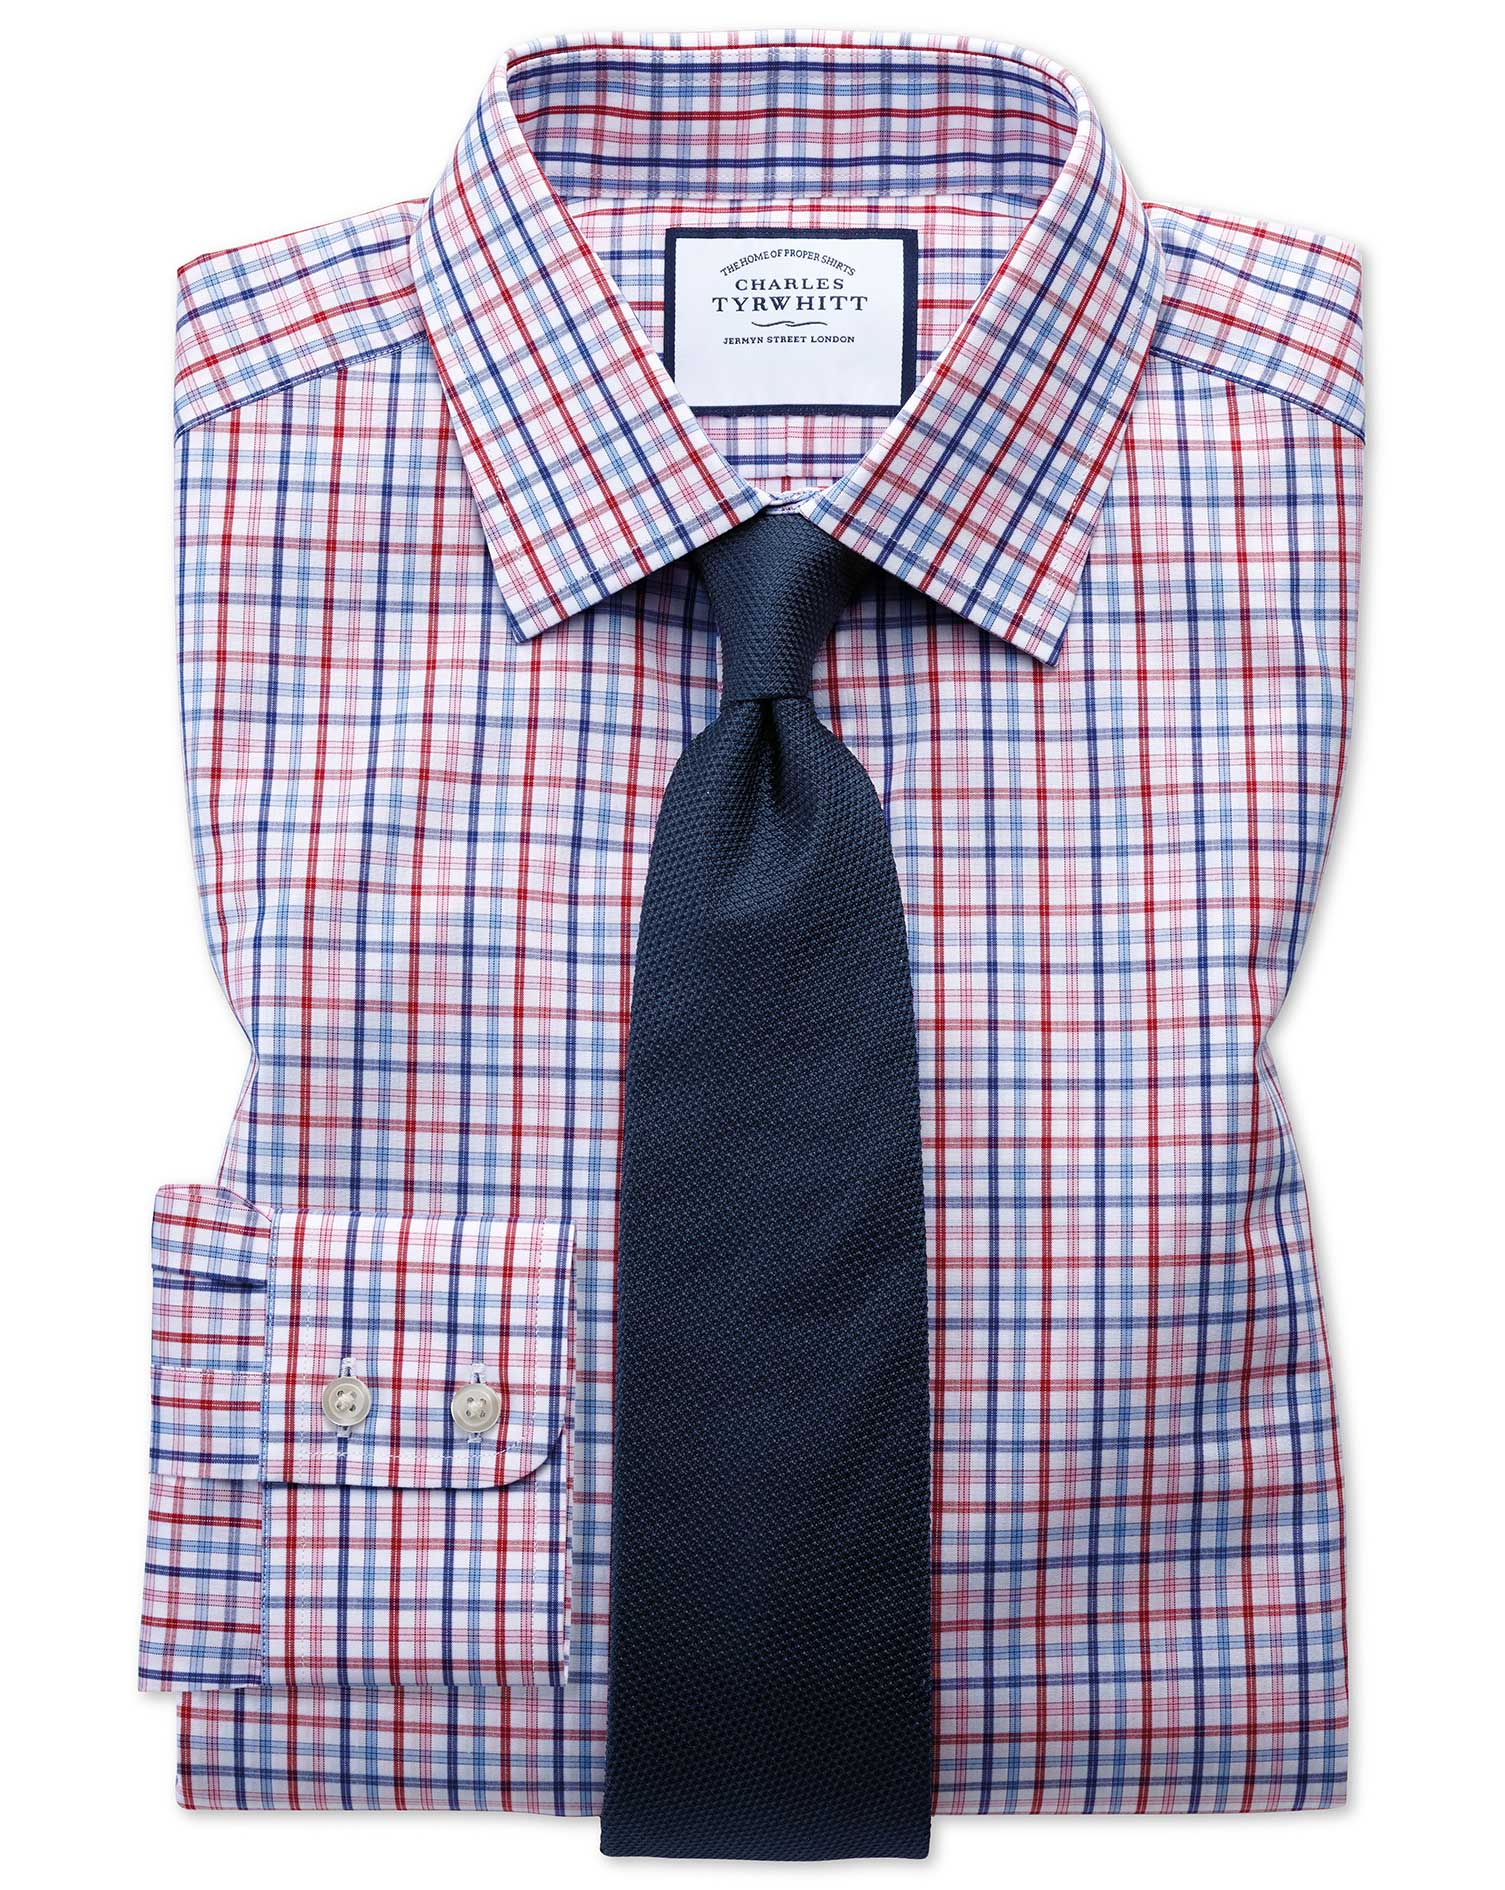 Classic Fit Poplin Multi Red Check Cotton Formal Shirt Single Cuff Size 16/36 by Charles Tyrwhitt